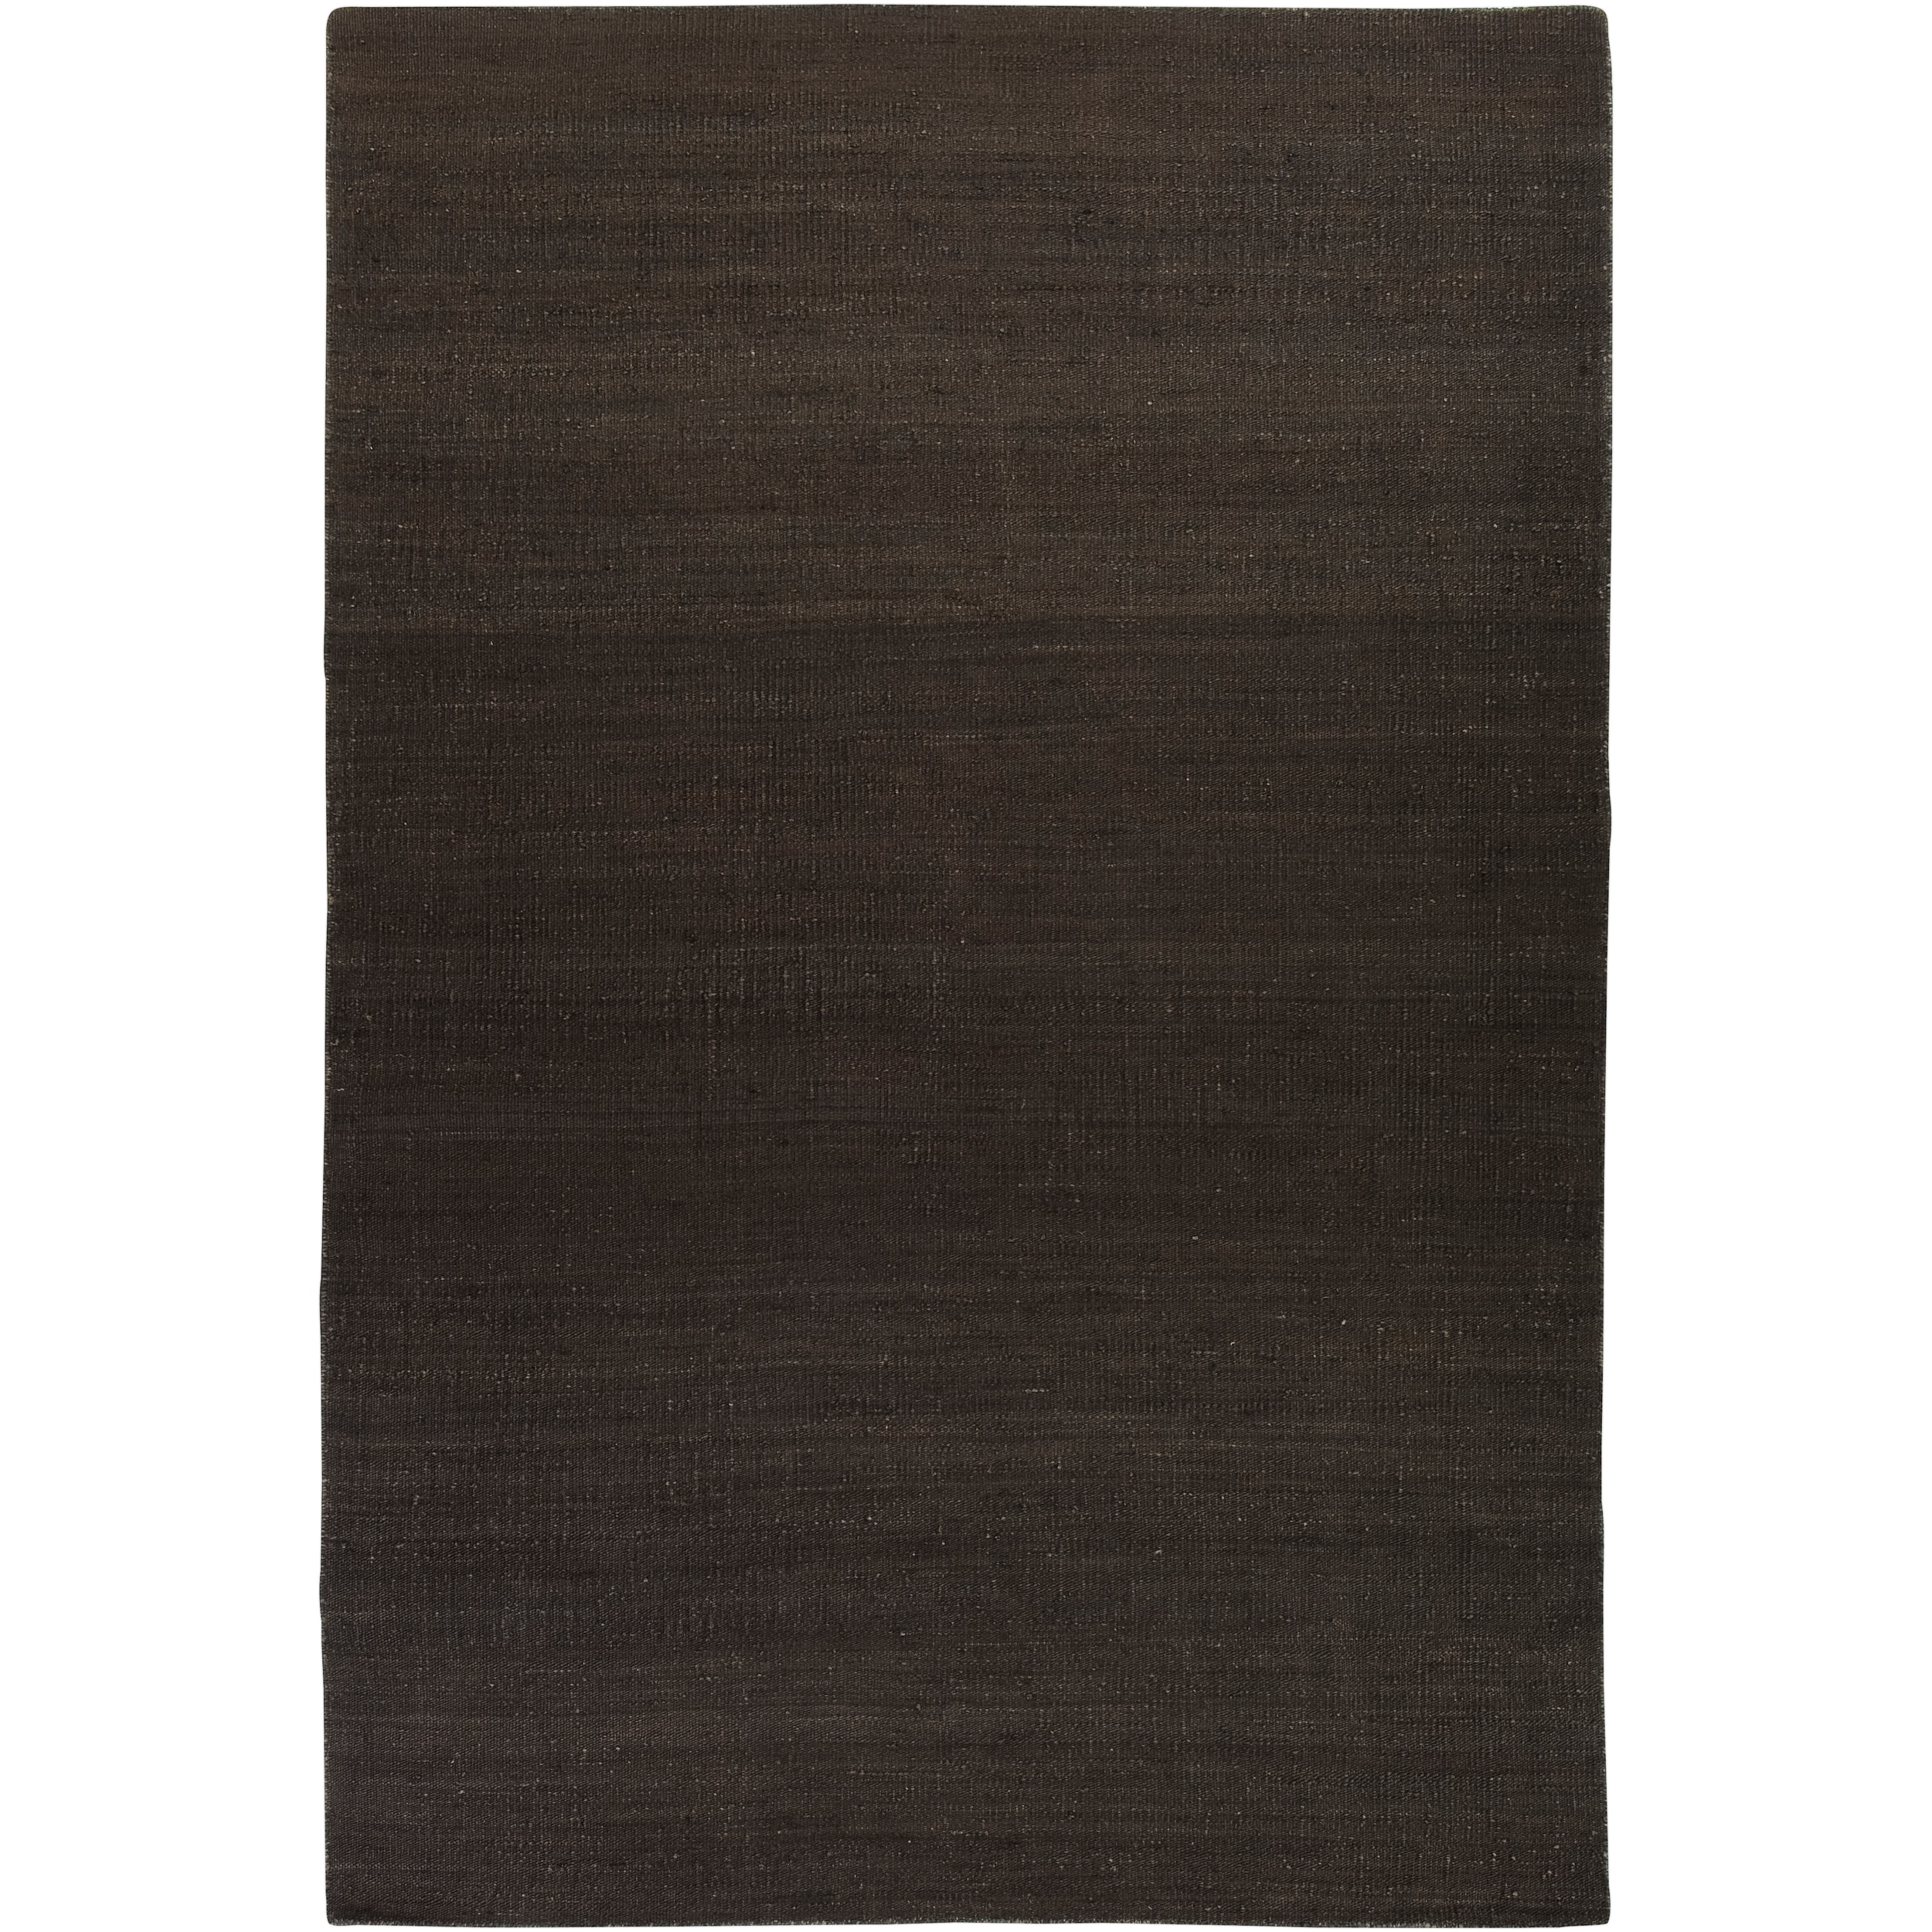 Hand-woven Cypress Brown Reversible Jute Rug Area Rug - 8' x 11'